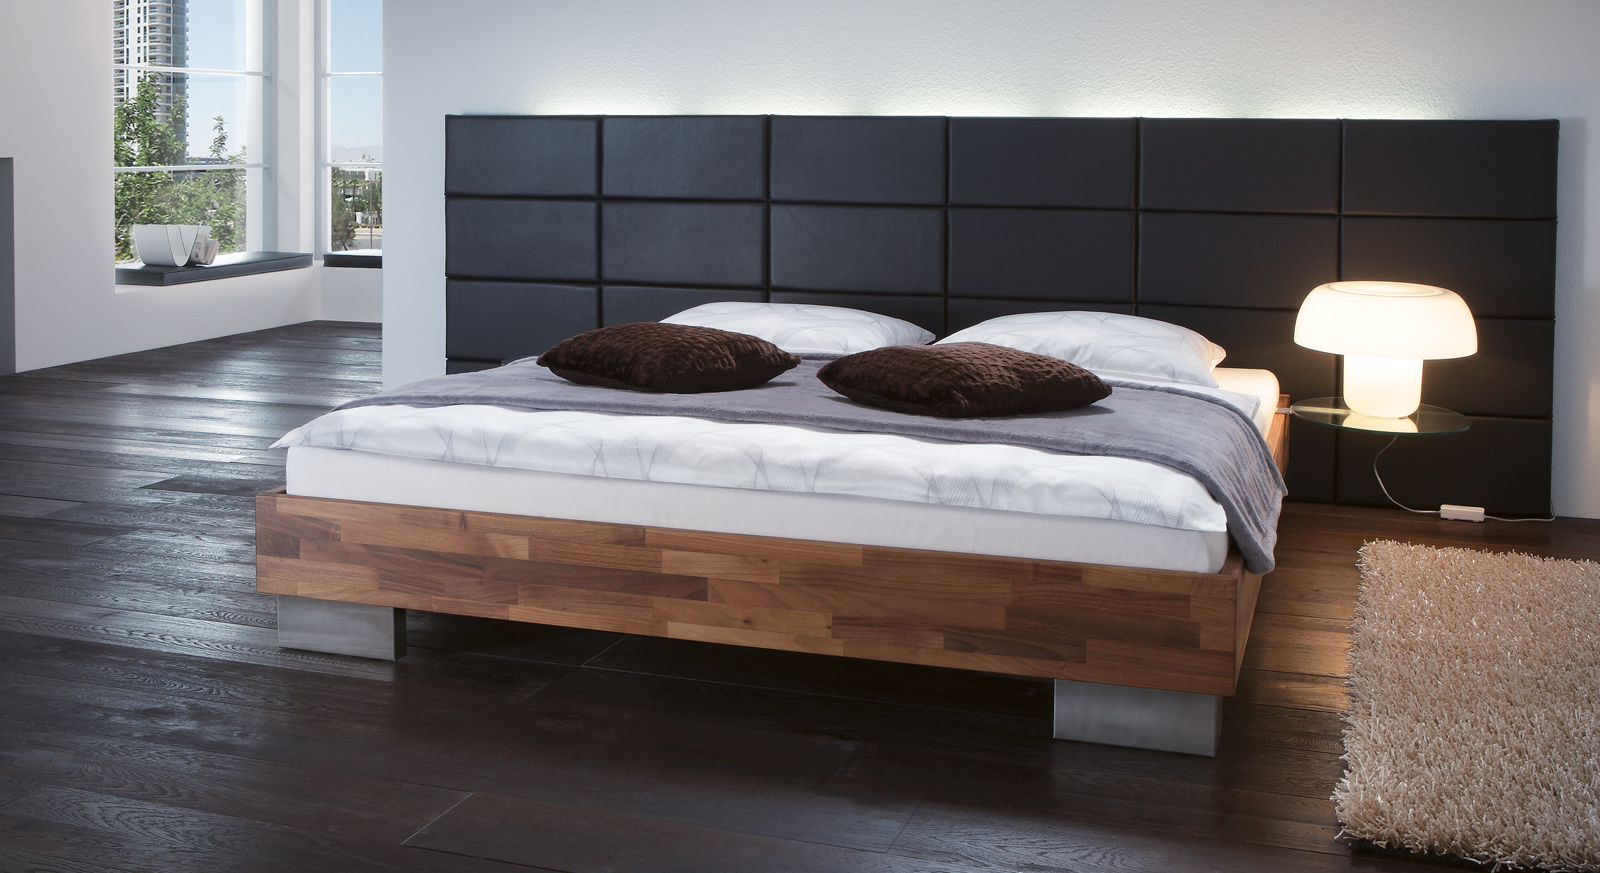 boxspring bett mit nachttisch moderner schubladen nachttisch f r schweberahmenbett patiala. Black Bedroom Furniture Sets. Home Design Ideas